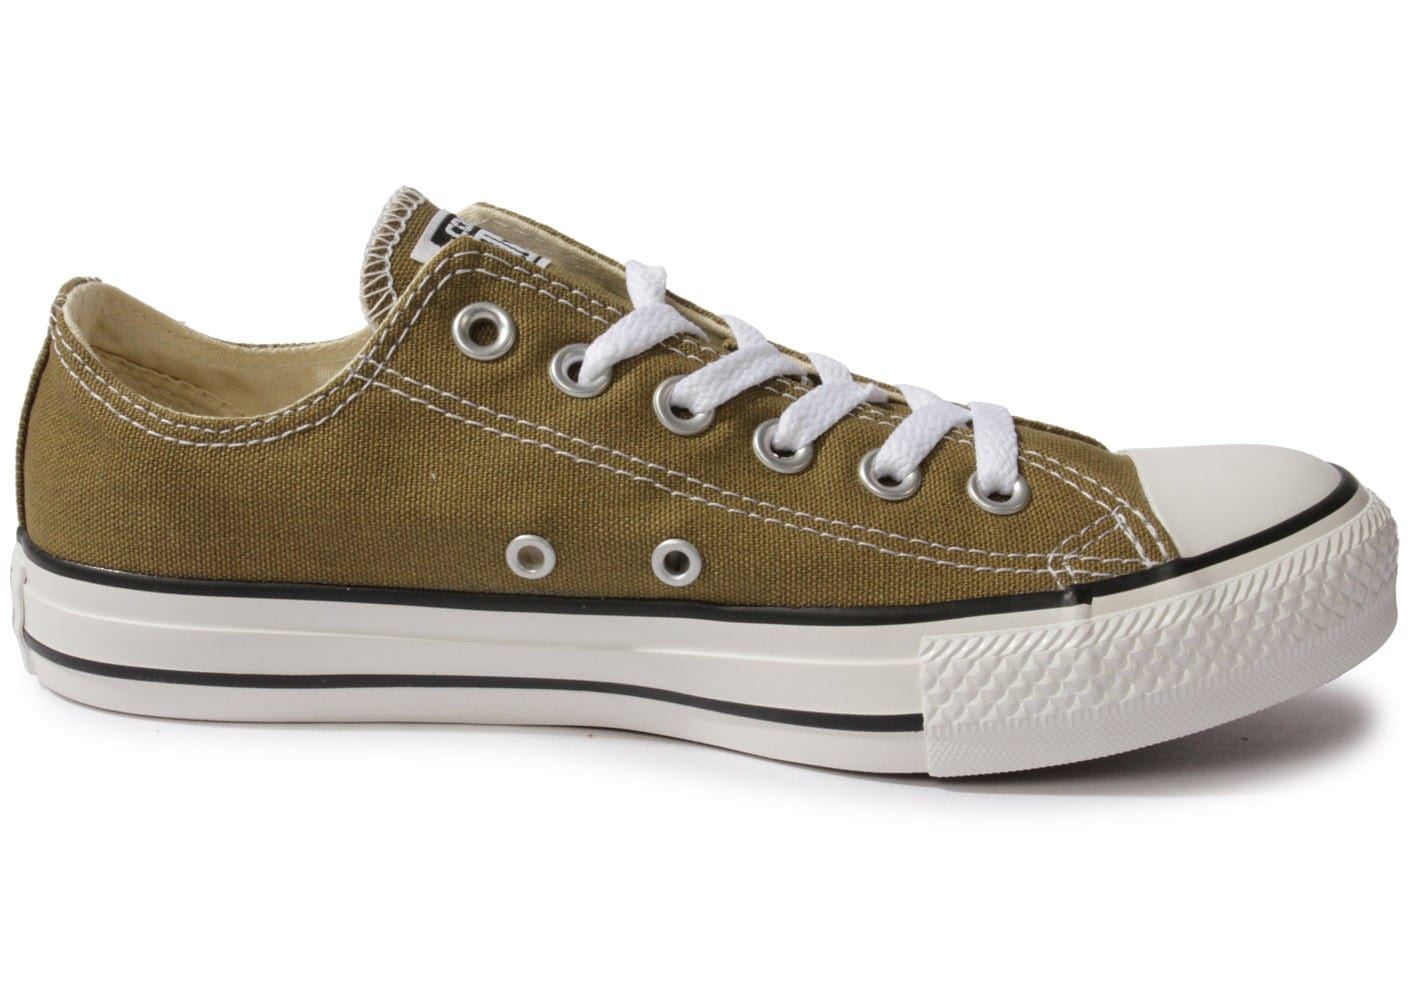 ... Chaussures Converse Chuck Taylor All-star Low Cactus vue dessous ...